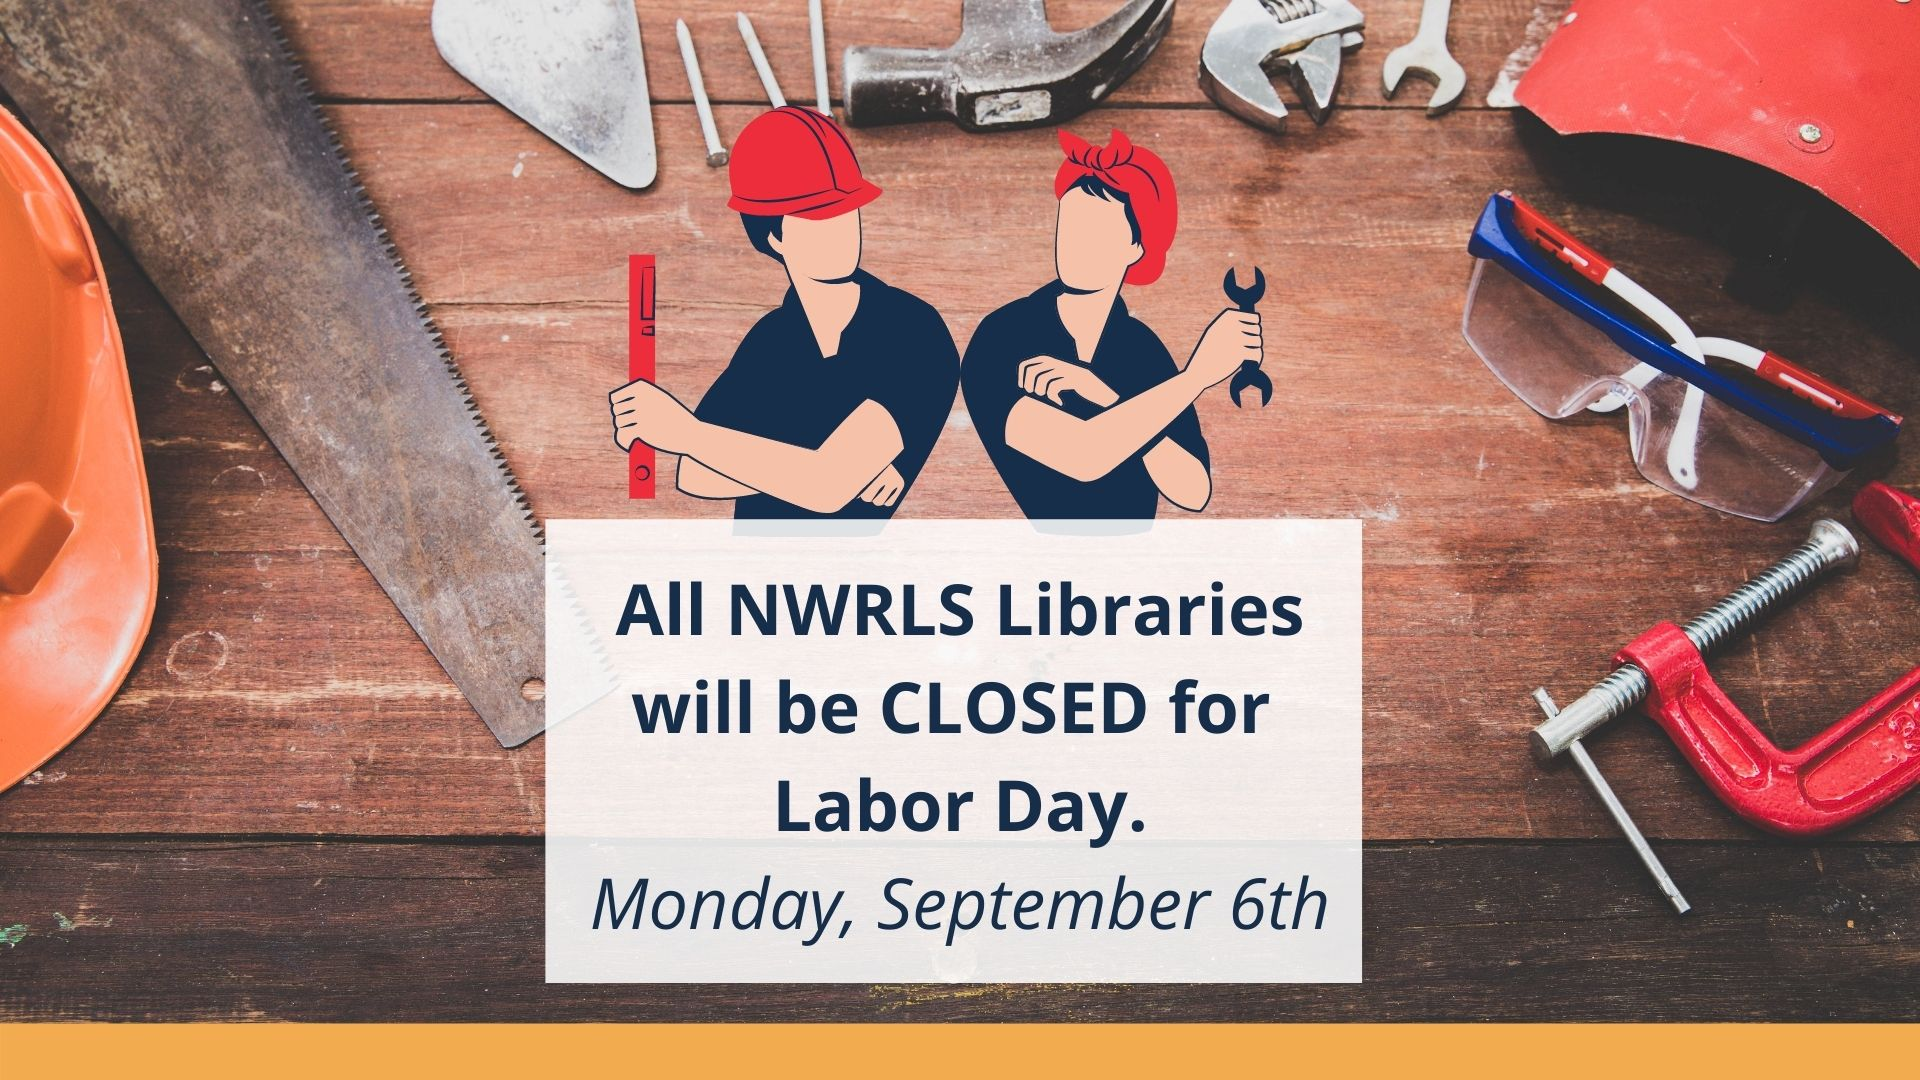 Man and Woman each carrying a tool for work and a note for the closure of all libraries to be closed for Labor Day on Monday September 6th